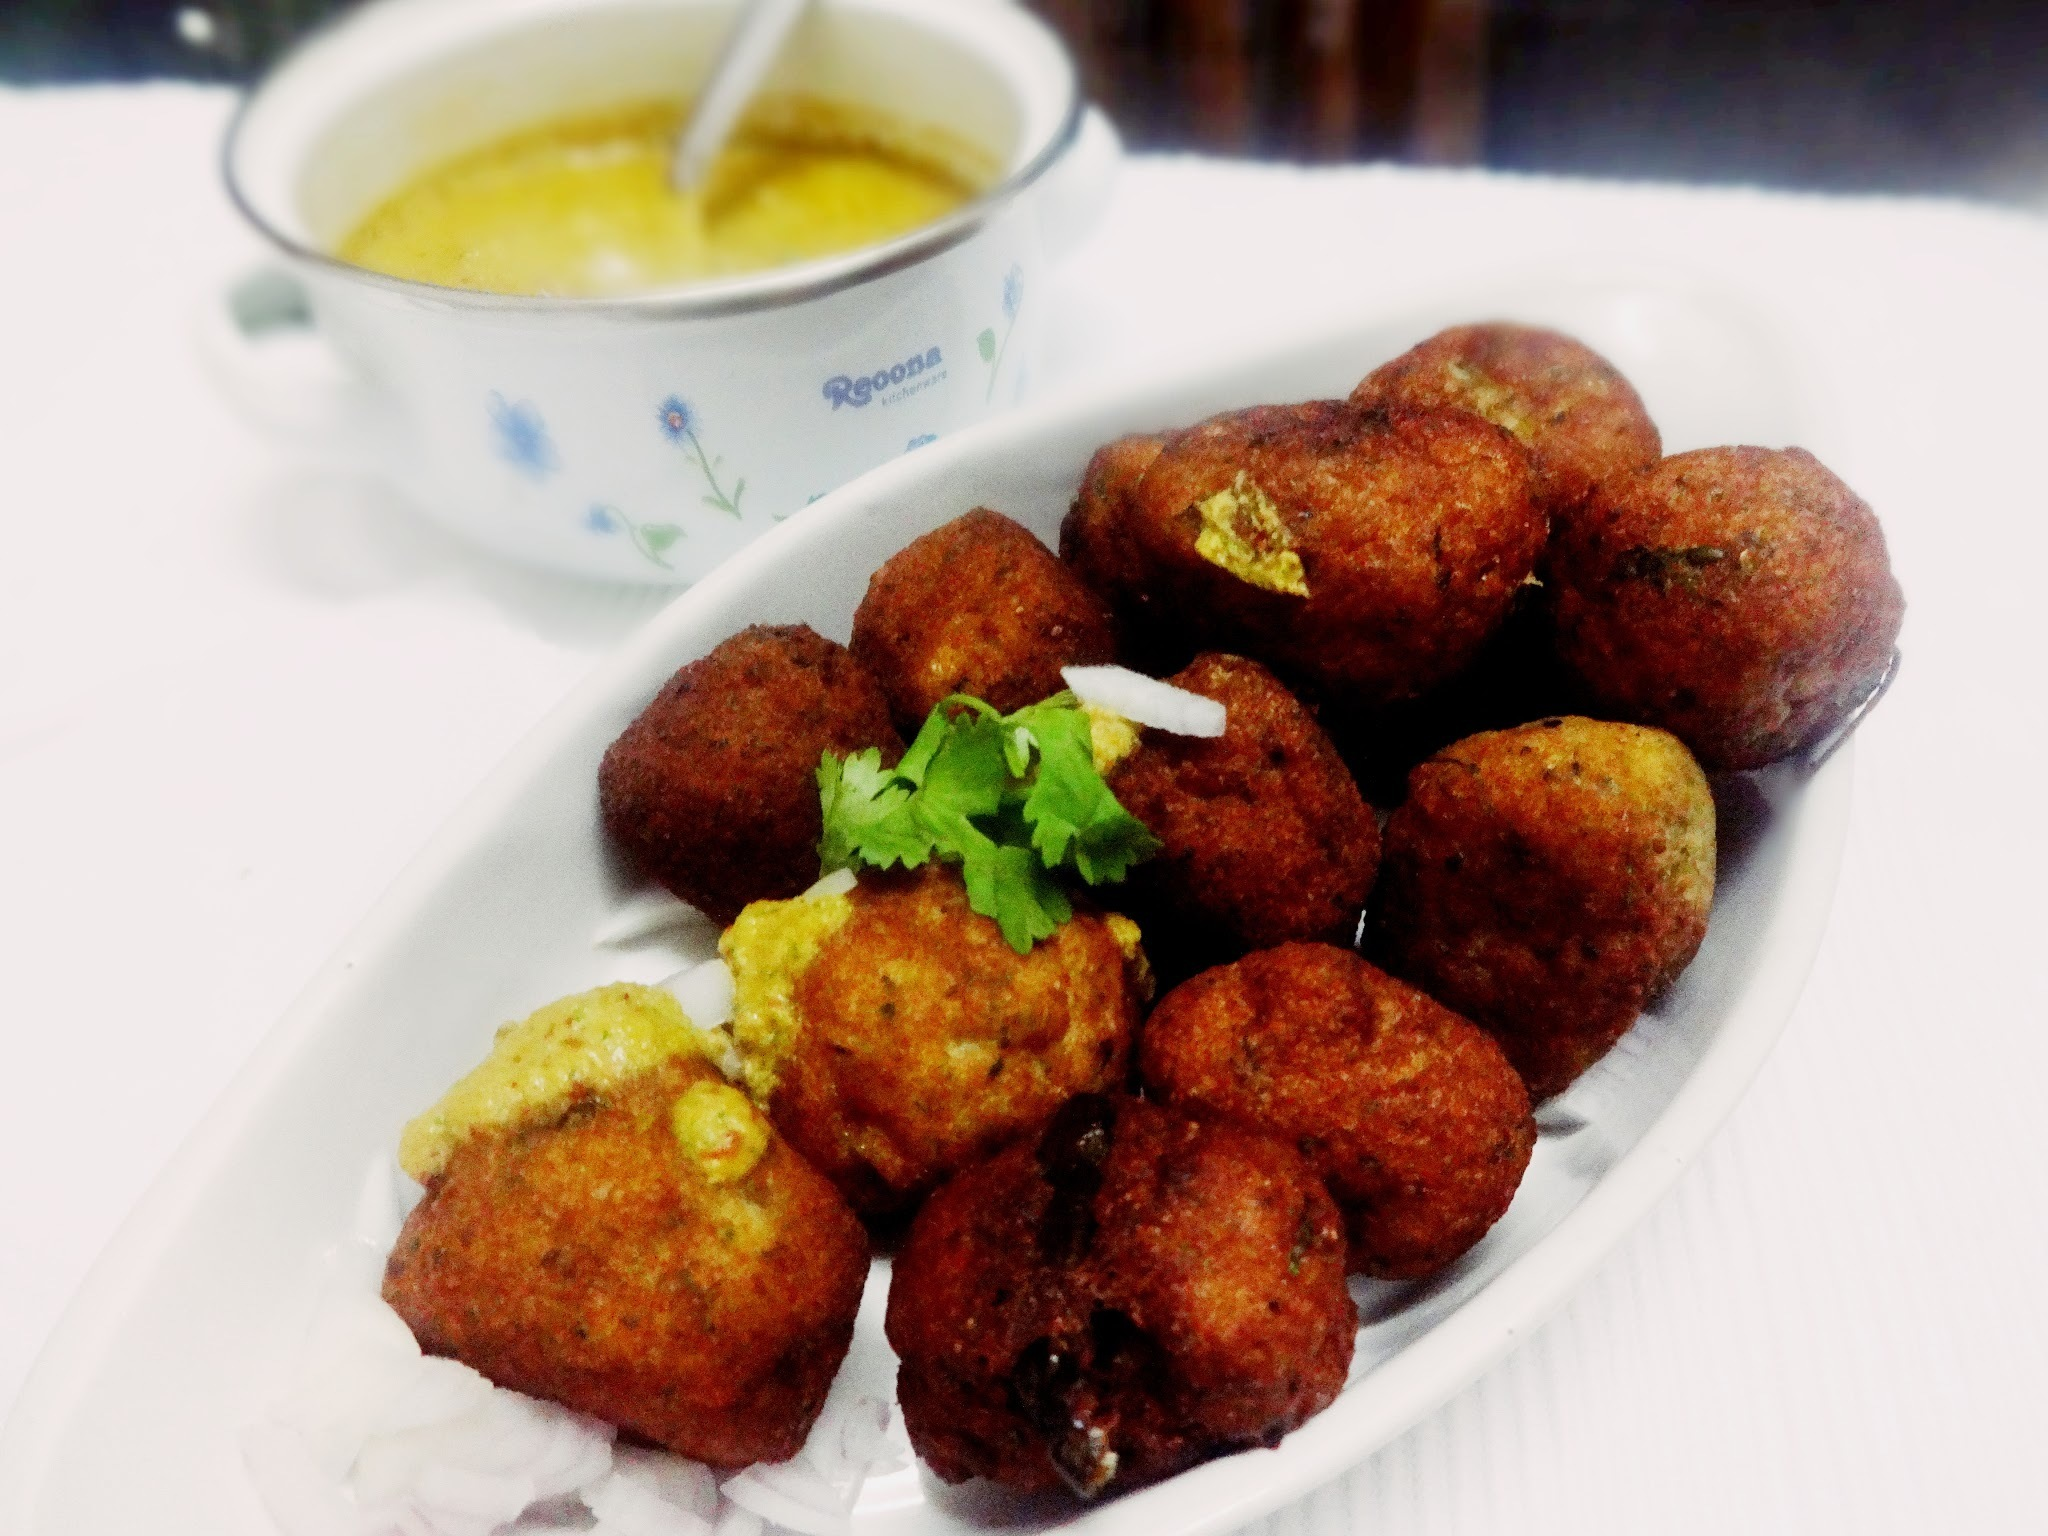 Potato Fish balls with spicy peanut sauce